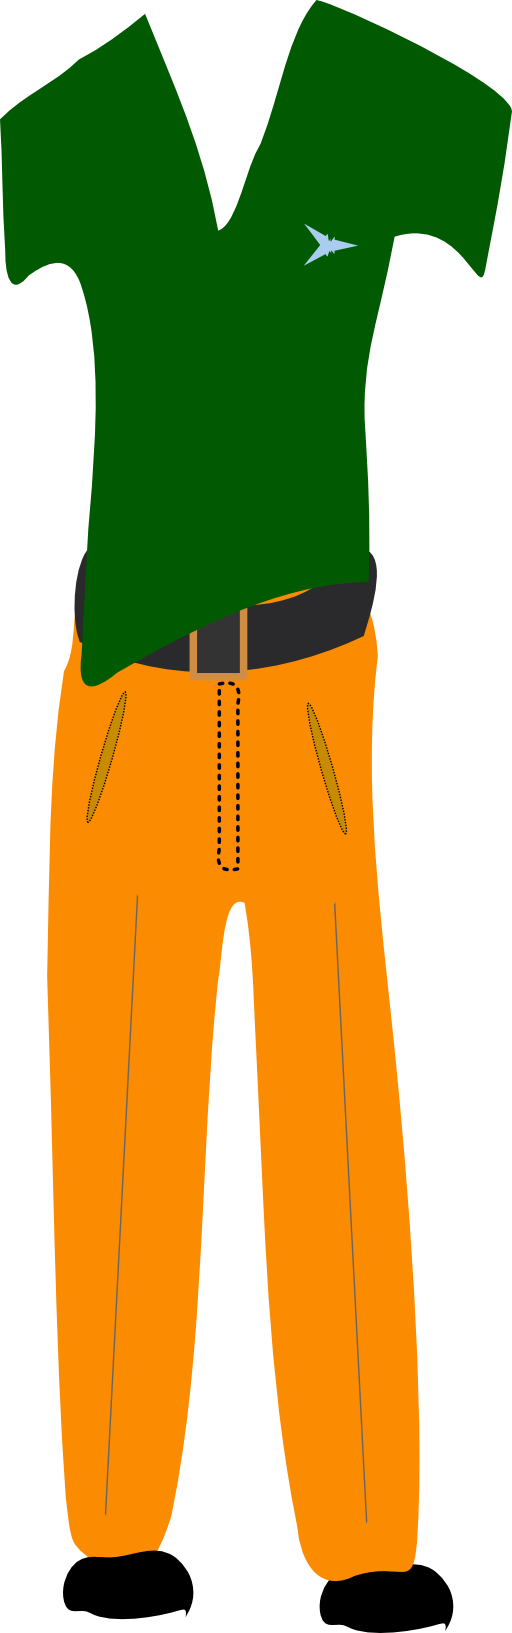 Man Clothes Clipart Royalty Free Public Domain Clipart ...